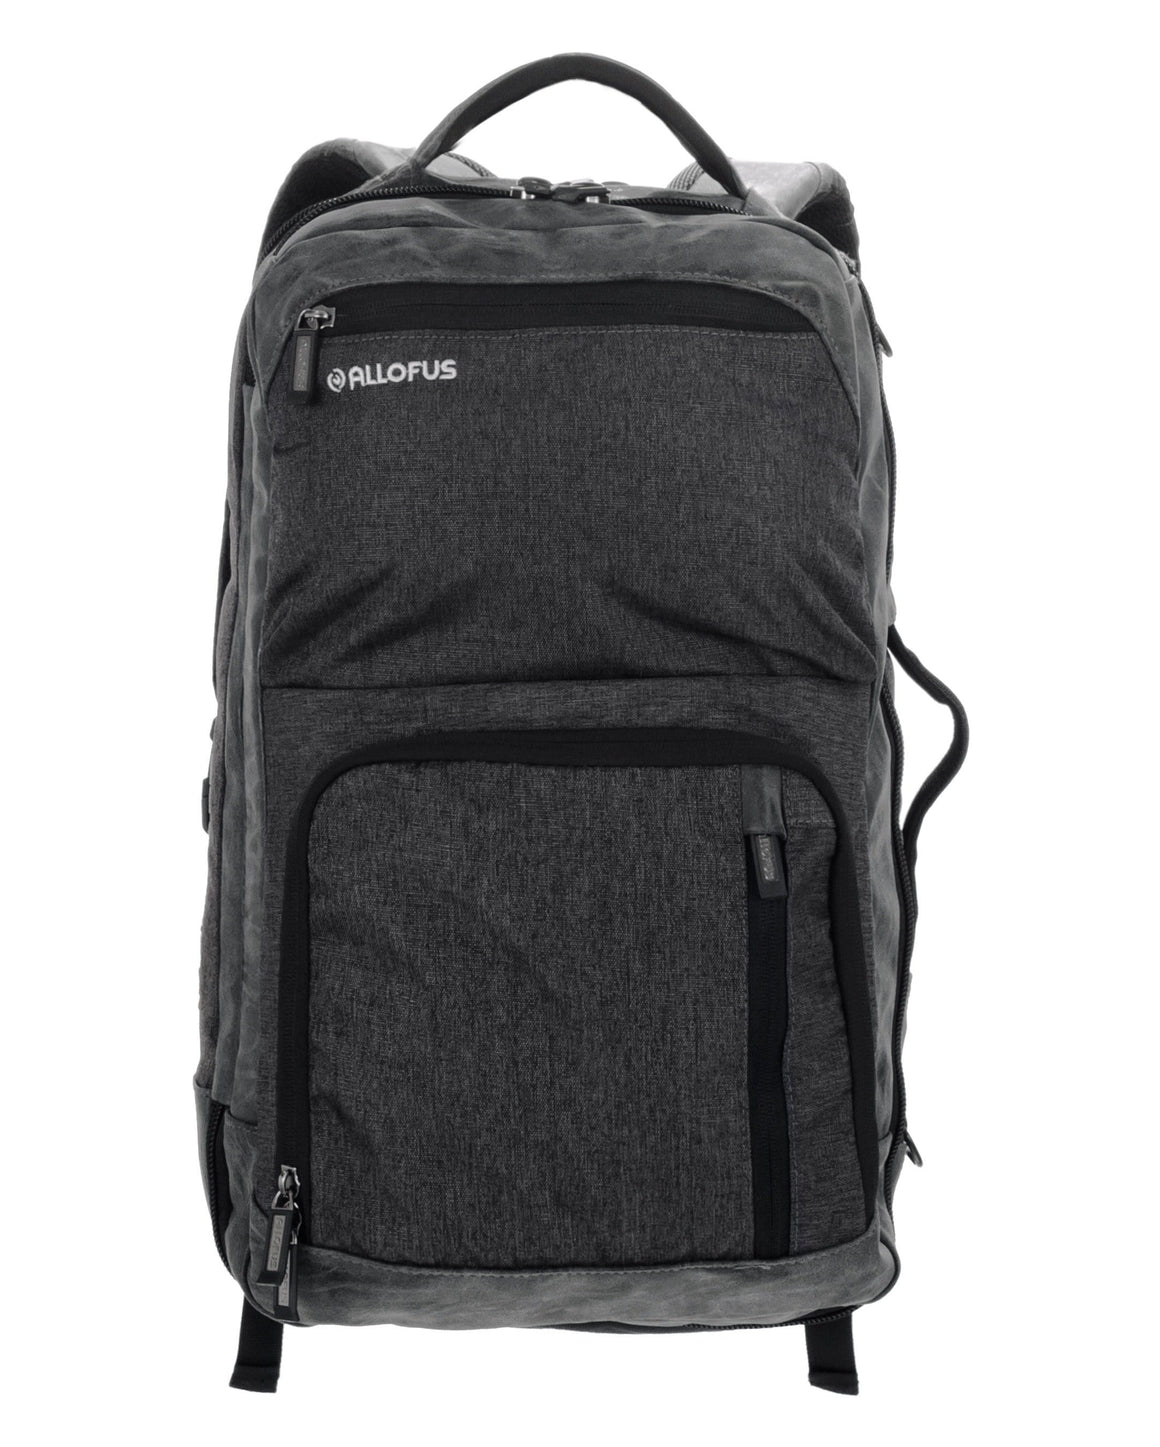 Multiple Images of the All of Us Drifter Backpack